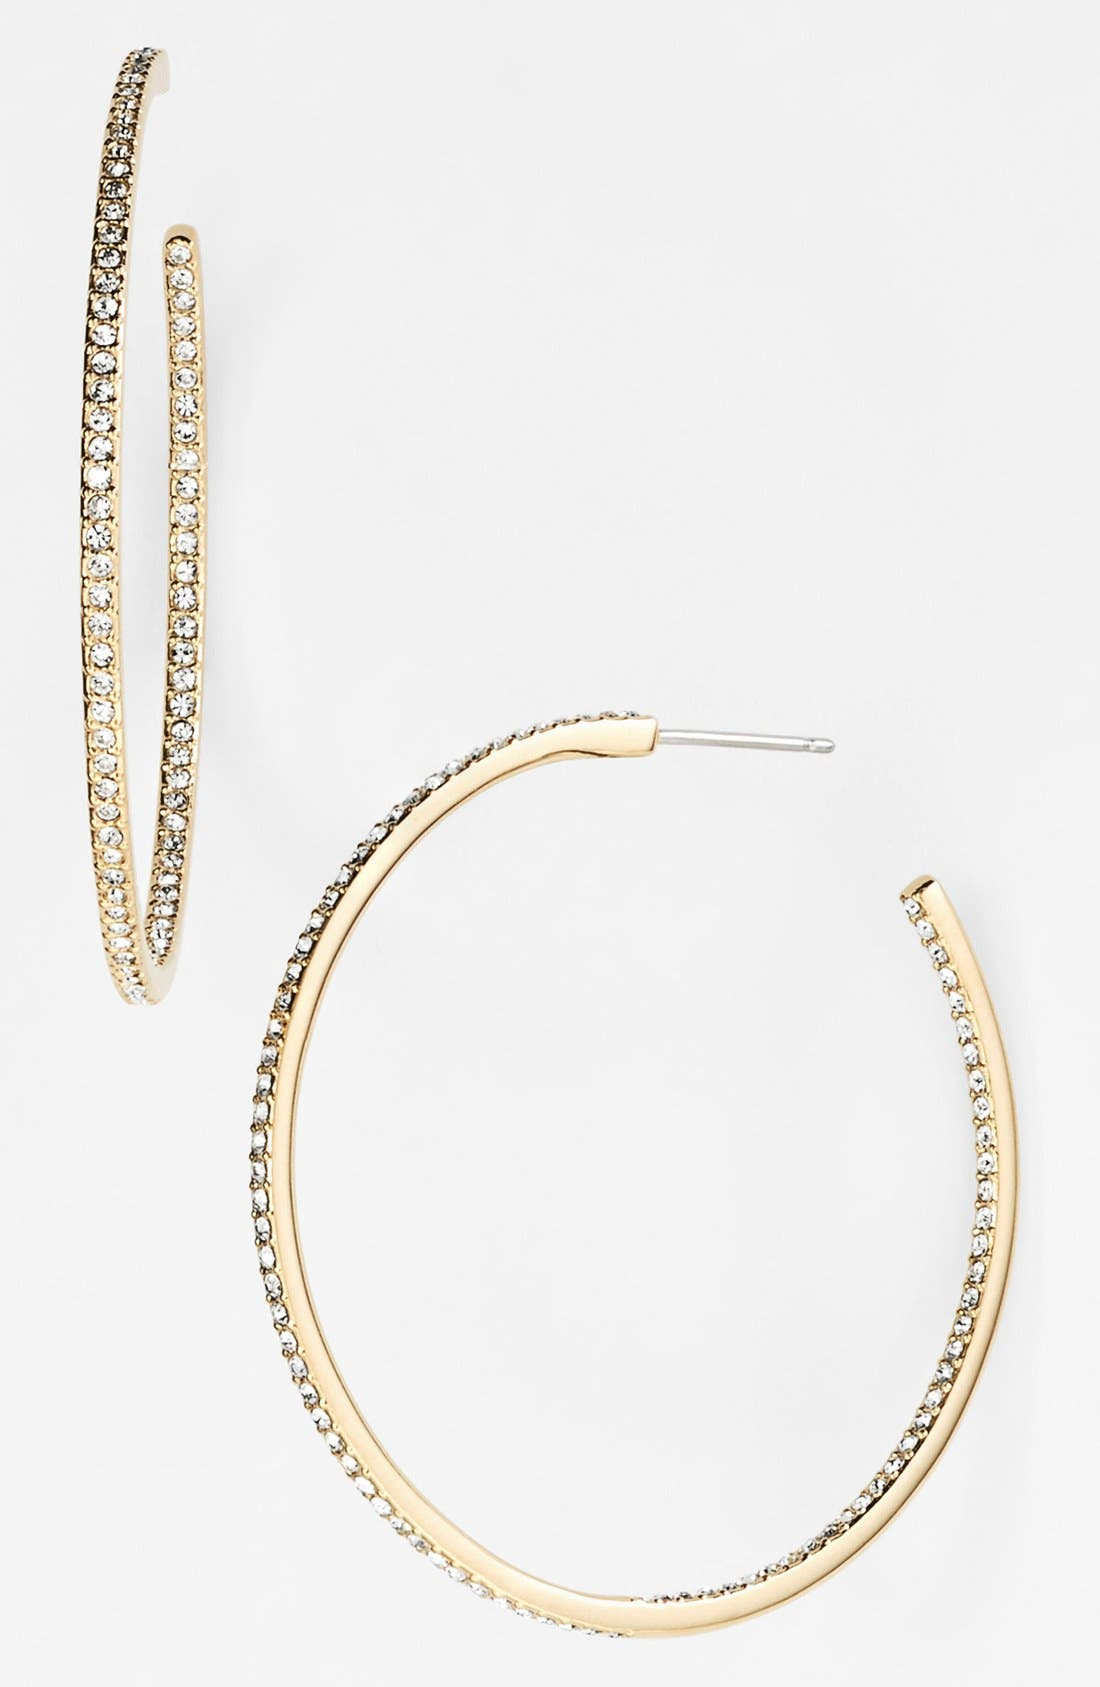 Medium Inside Out Hoop Earrings,                         Main,                         color, Gold/ Clear